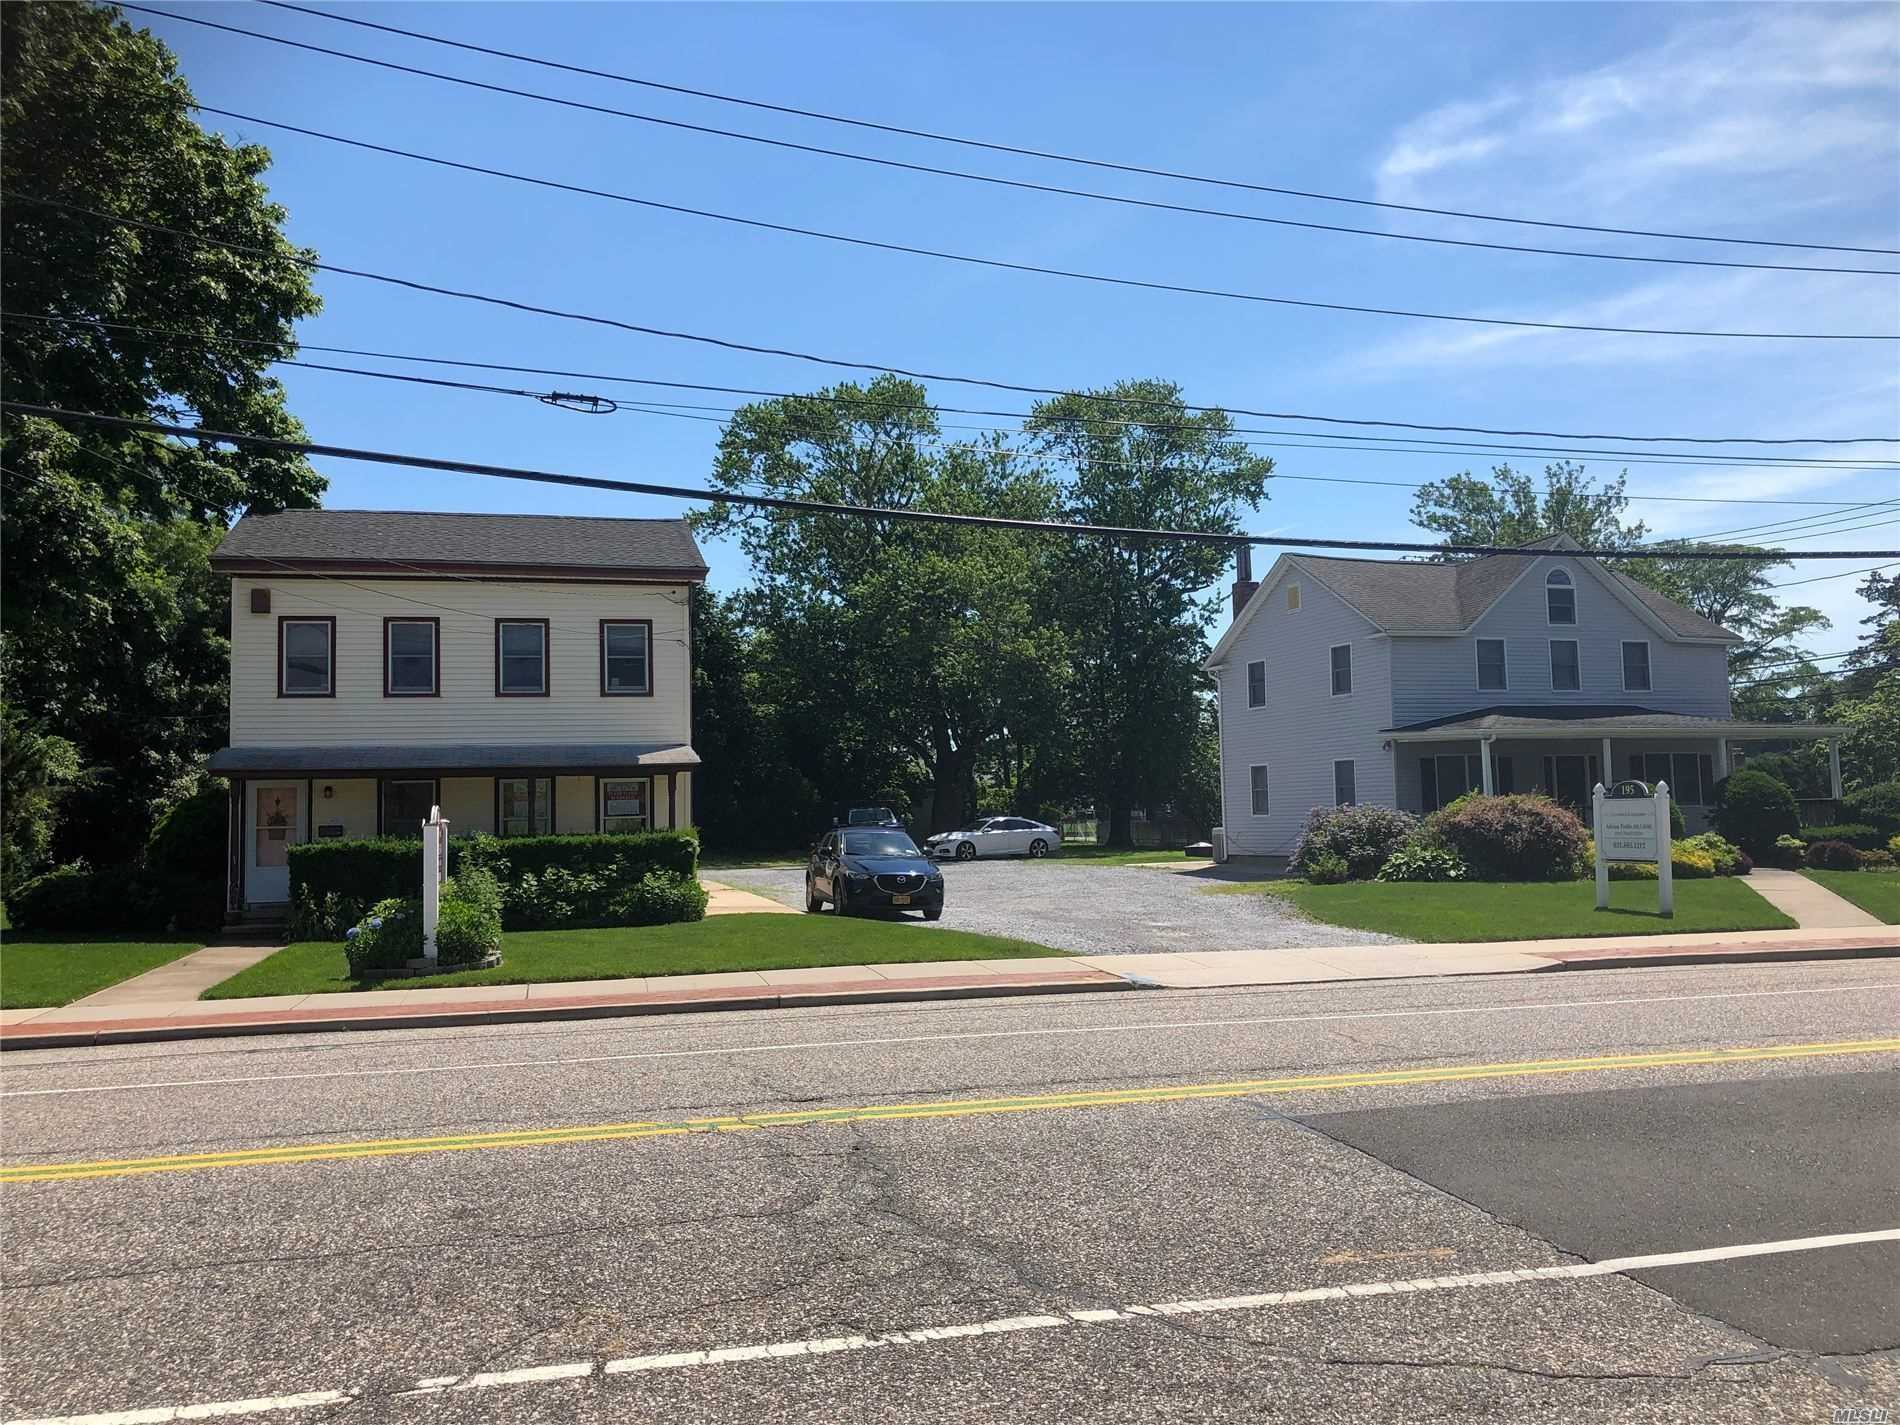 2 Properties, Must be sold together. Home 195 is in Floor Description Above. Home 199 Floor Description: 1st Floor: Entry Foyer, Handicap Bath, Other, 2 Bedrooms 2nd Floor: Eat in Kitchen, Living Rm, 1 Bedroom, Full Bath. Taxes for 199 are $11, 745.52